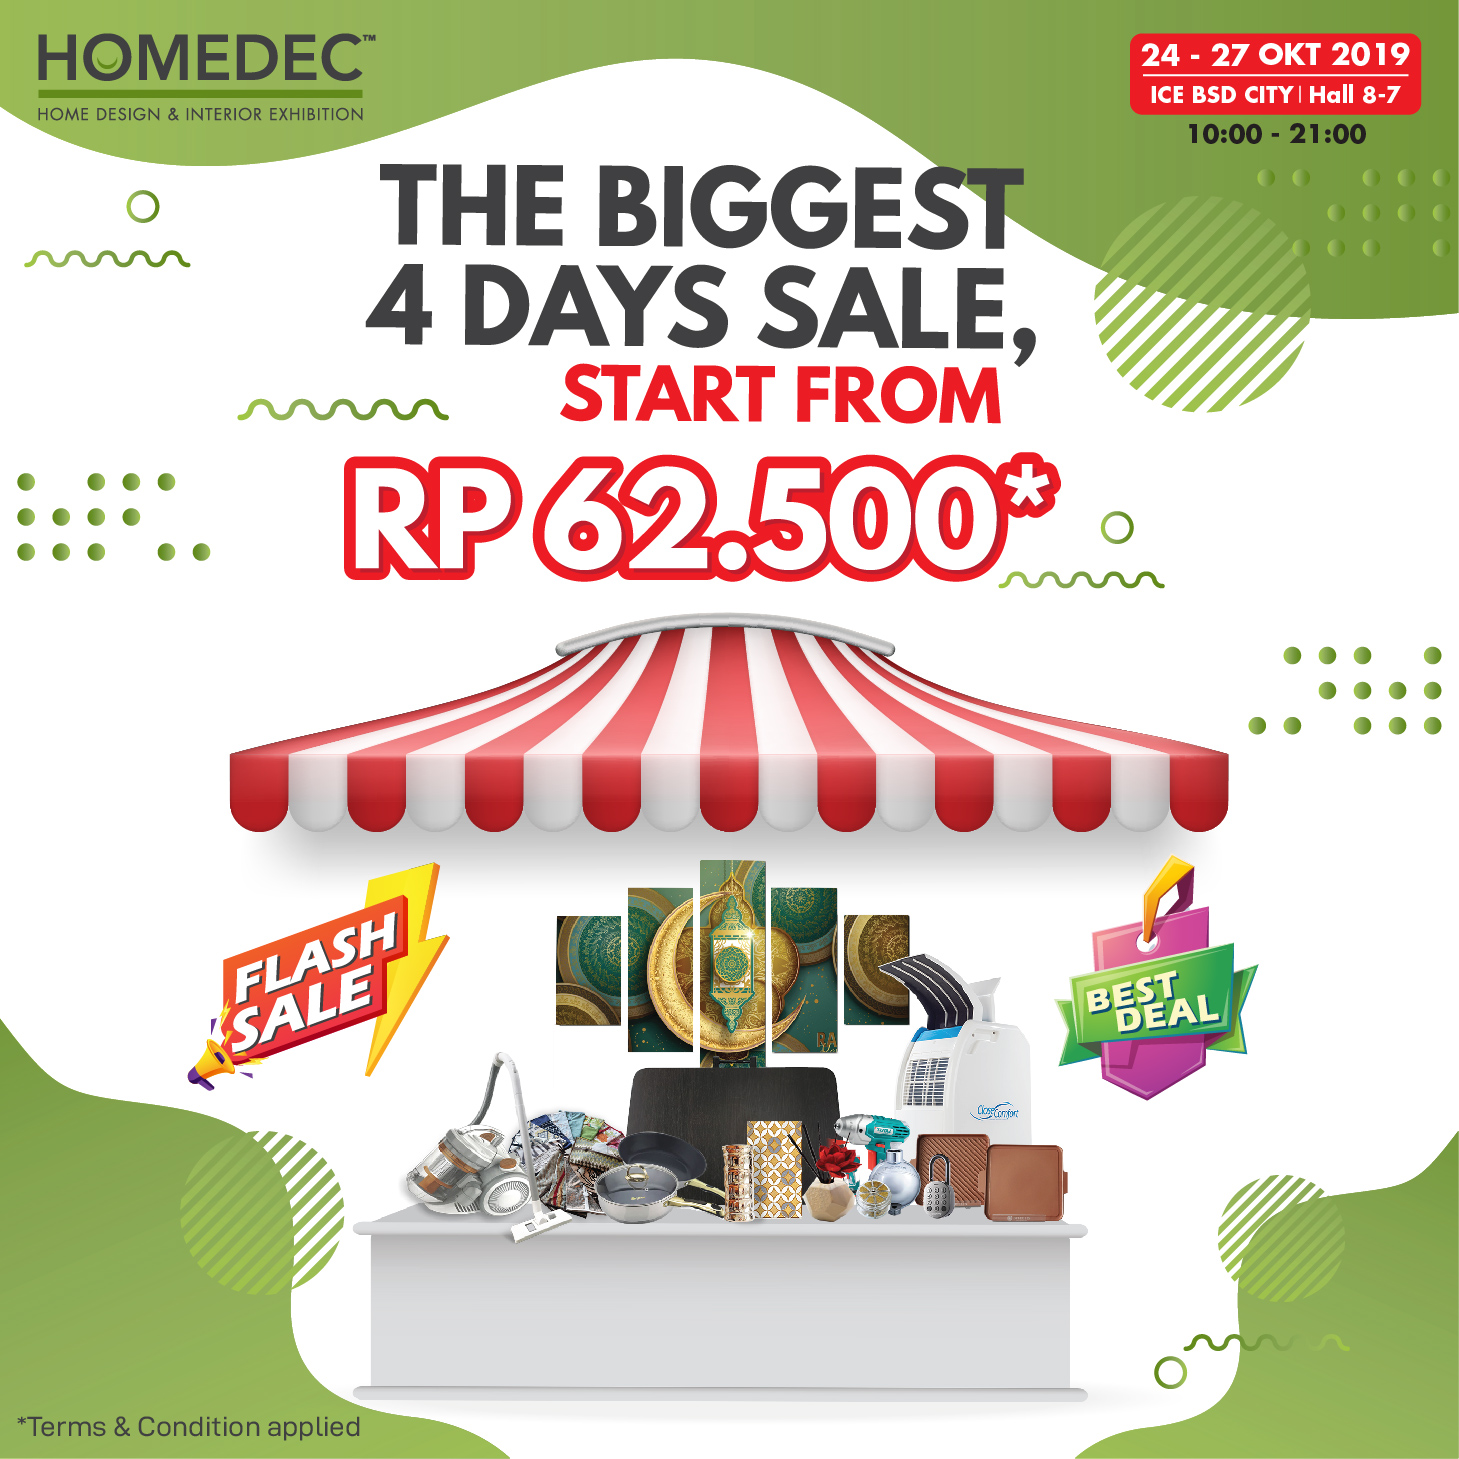 The Biggest 4 Days Sale